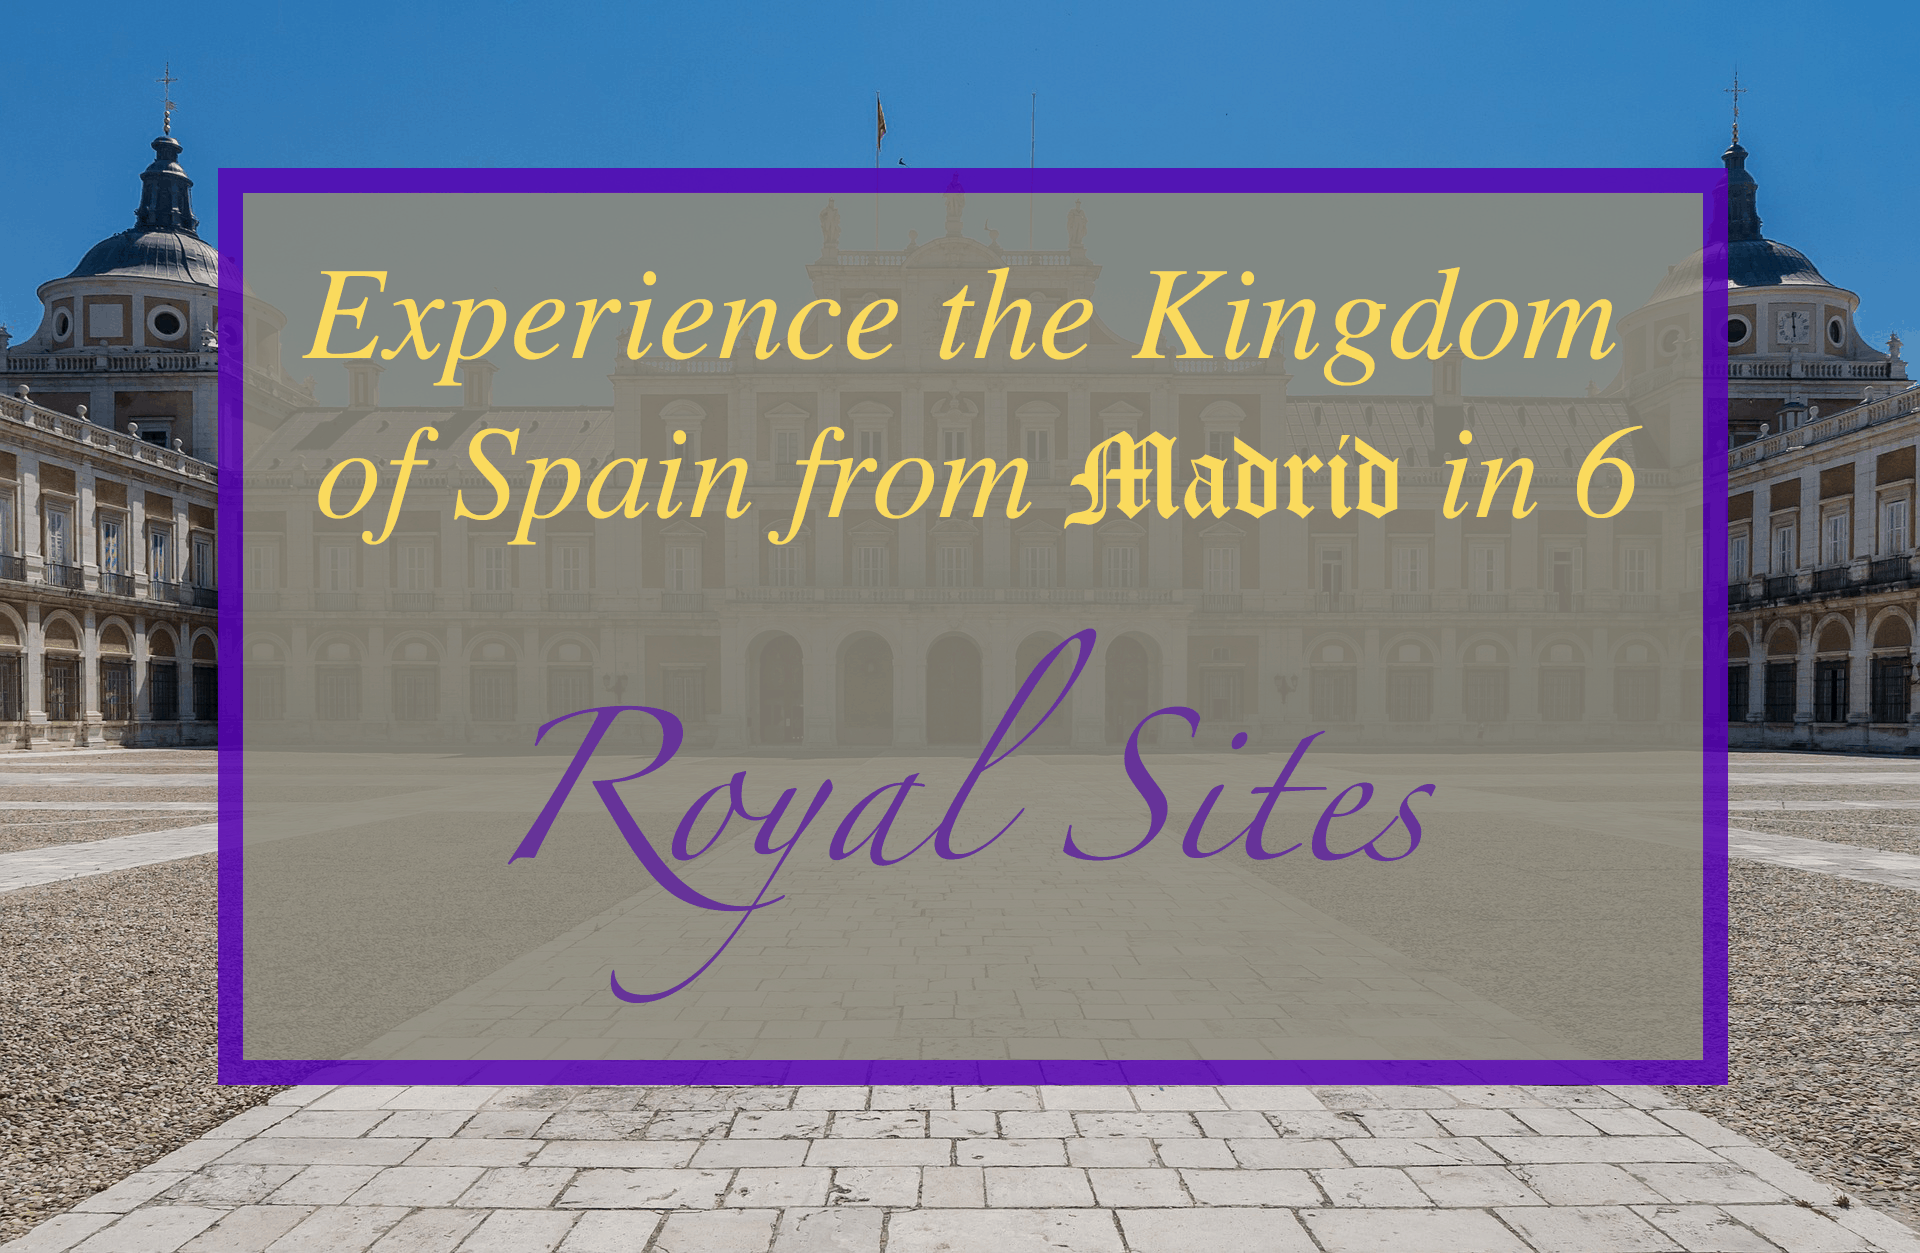 Experience the Kingdom of Spain in 6 Royal Sites